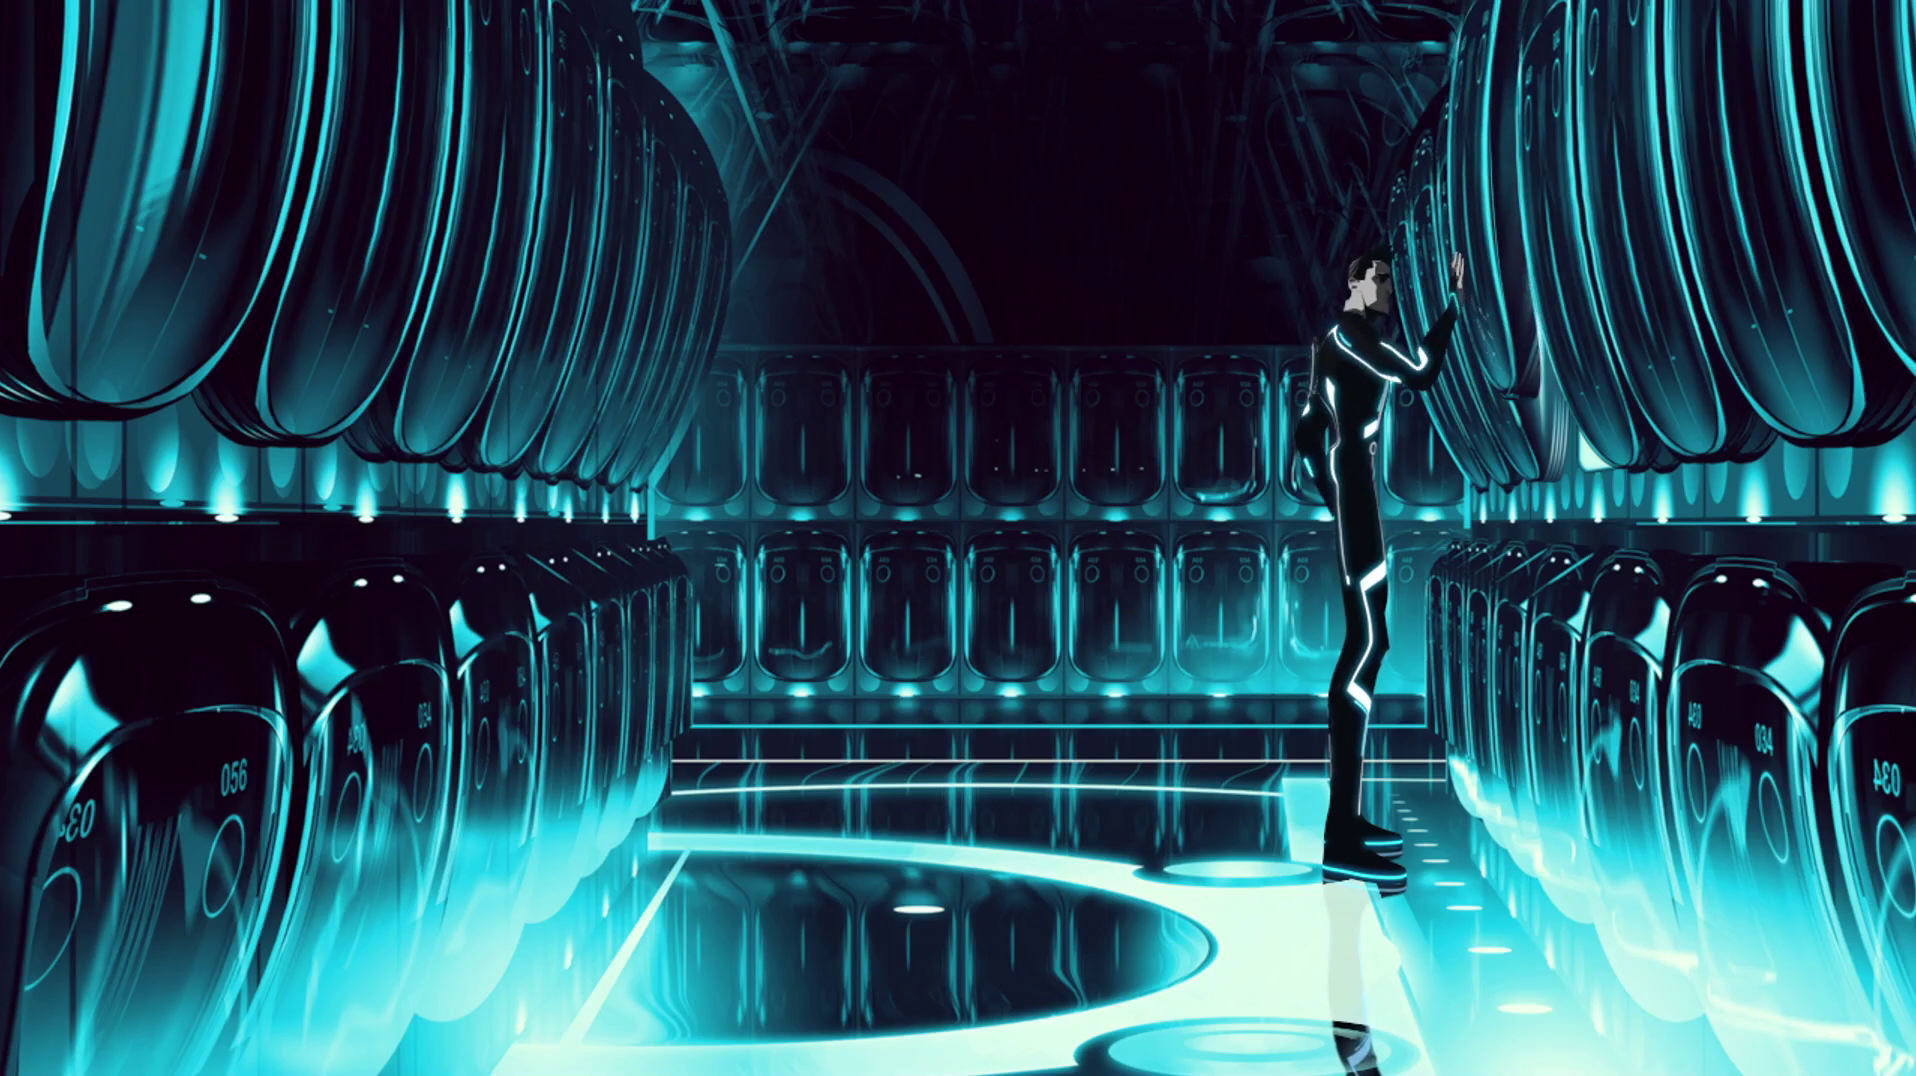 Tron_2019-08-05-23h13m10s657.png